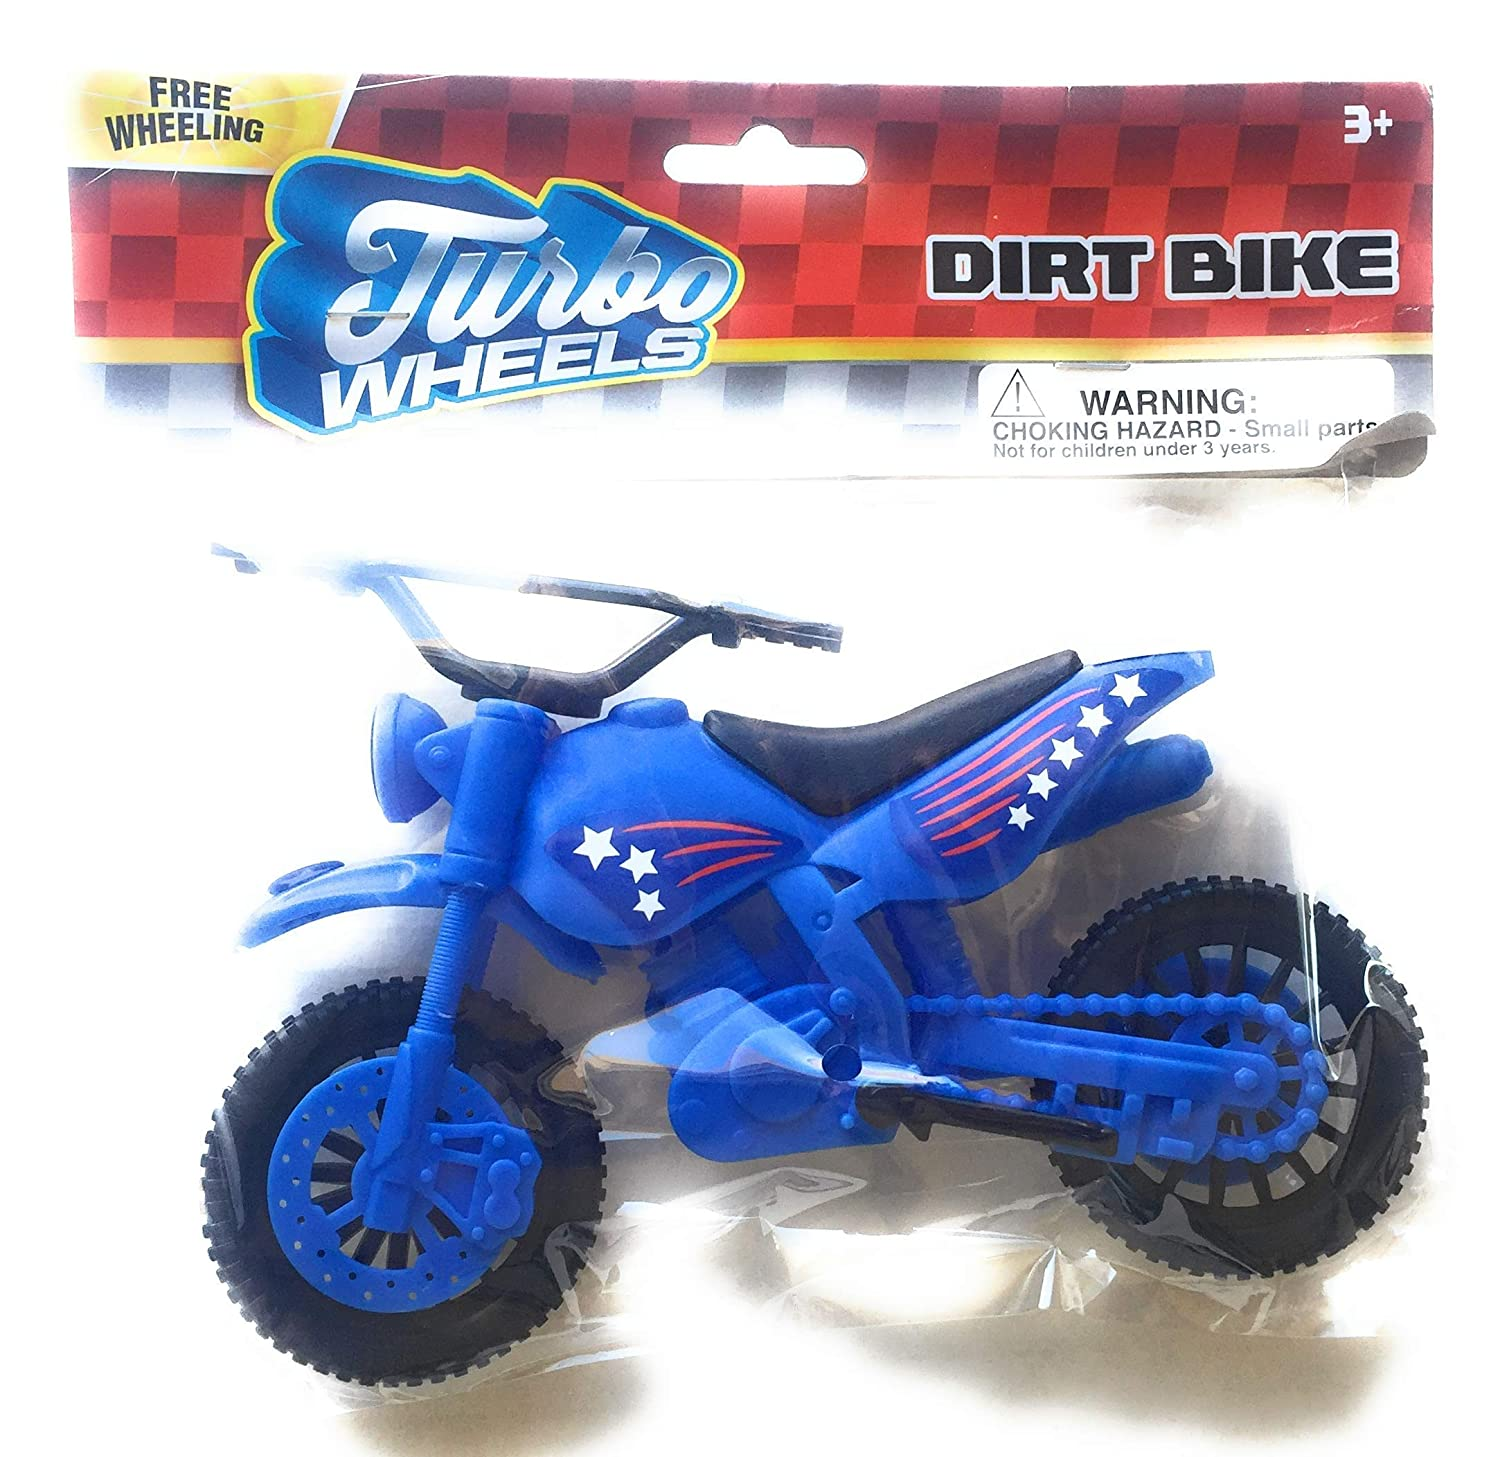 Amazon.com: Turbo Wheels Toy Plastic Dirt Bikes (Red, Blue, Green): Toys & Games